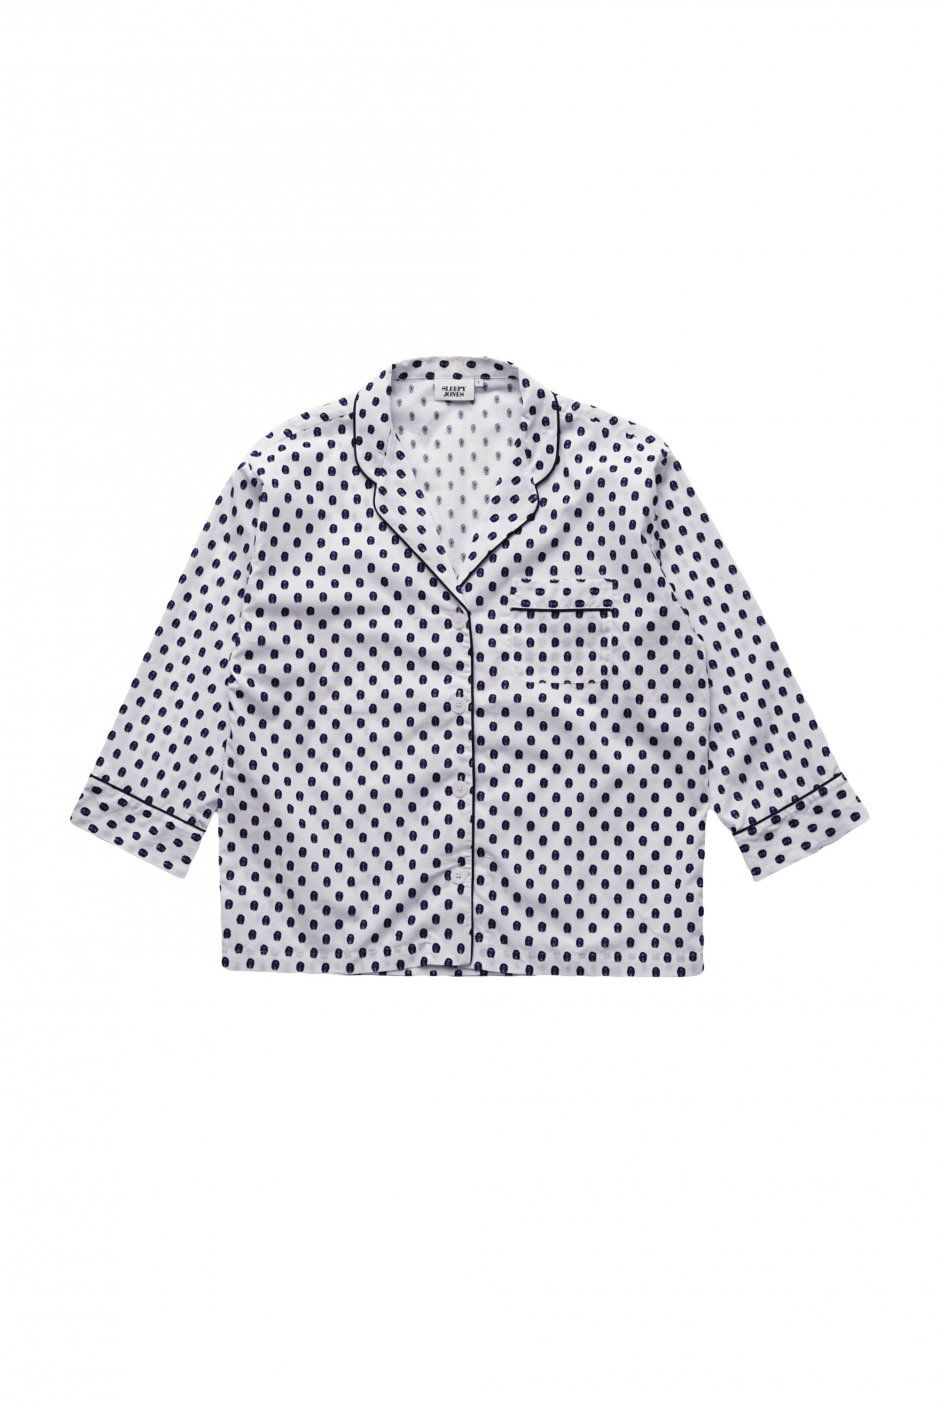 SLEEPY JONES WOMEN'S - MARINA PAJAMA SHIRT -LARGE SWISS DOT NAVY